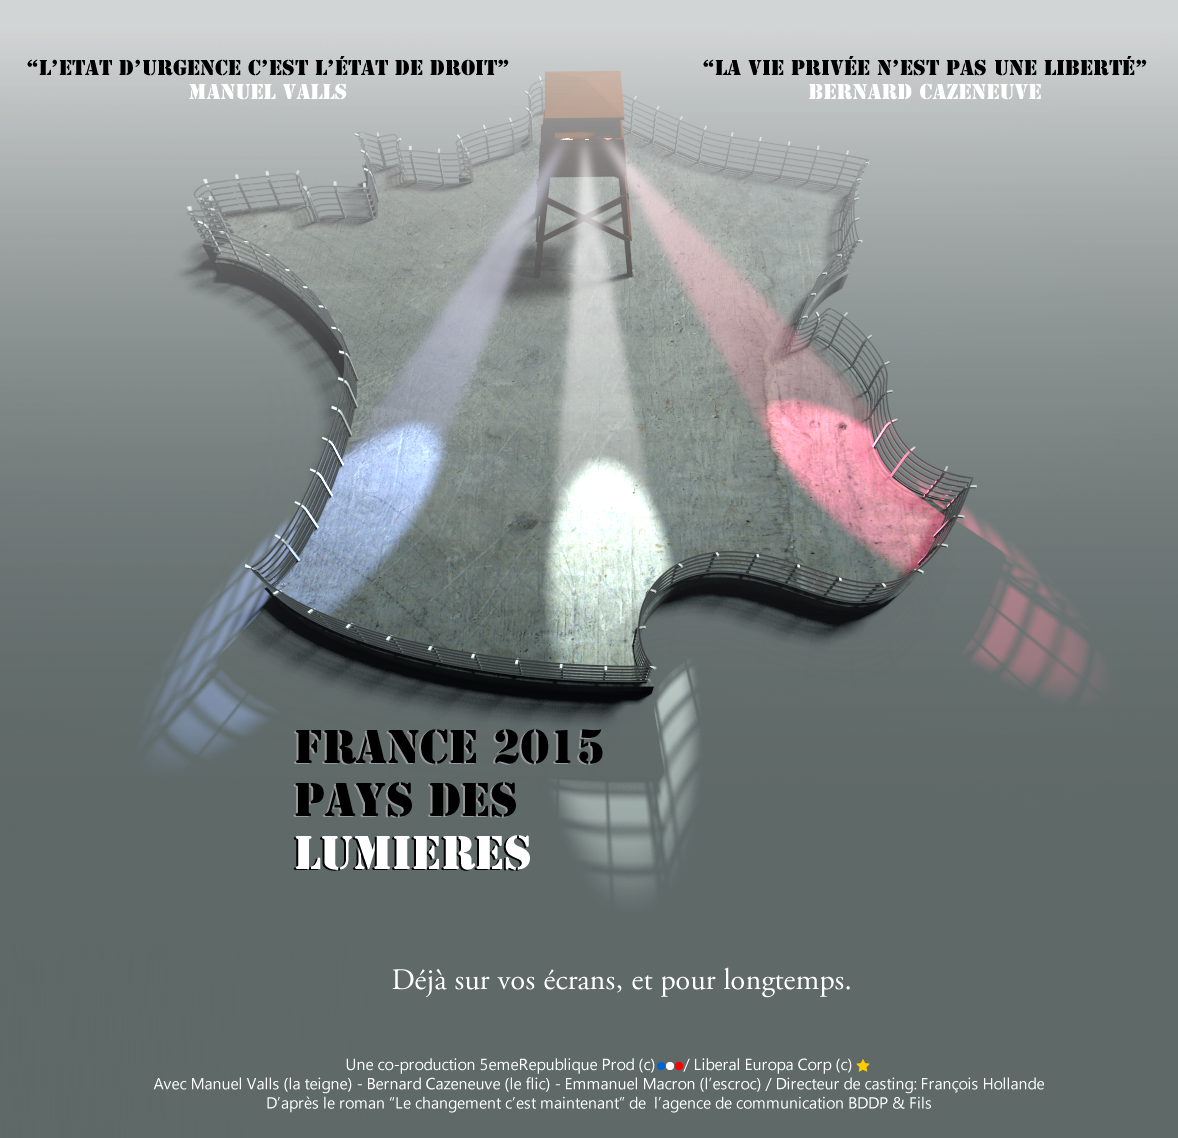 France 2015, pays des lumieres #etatdurgence https://t.co/dghQTv1boS